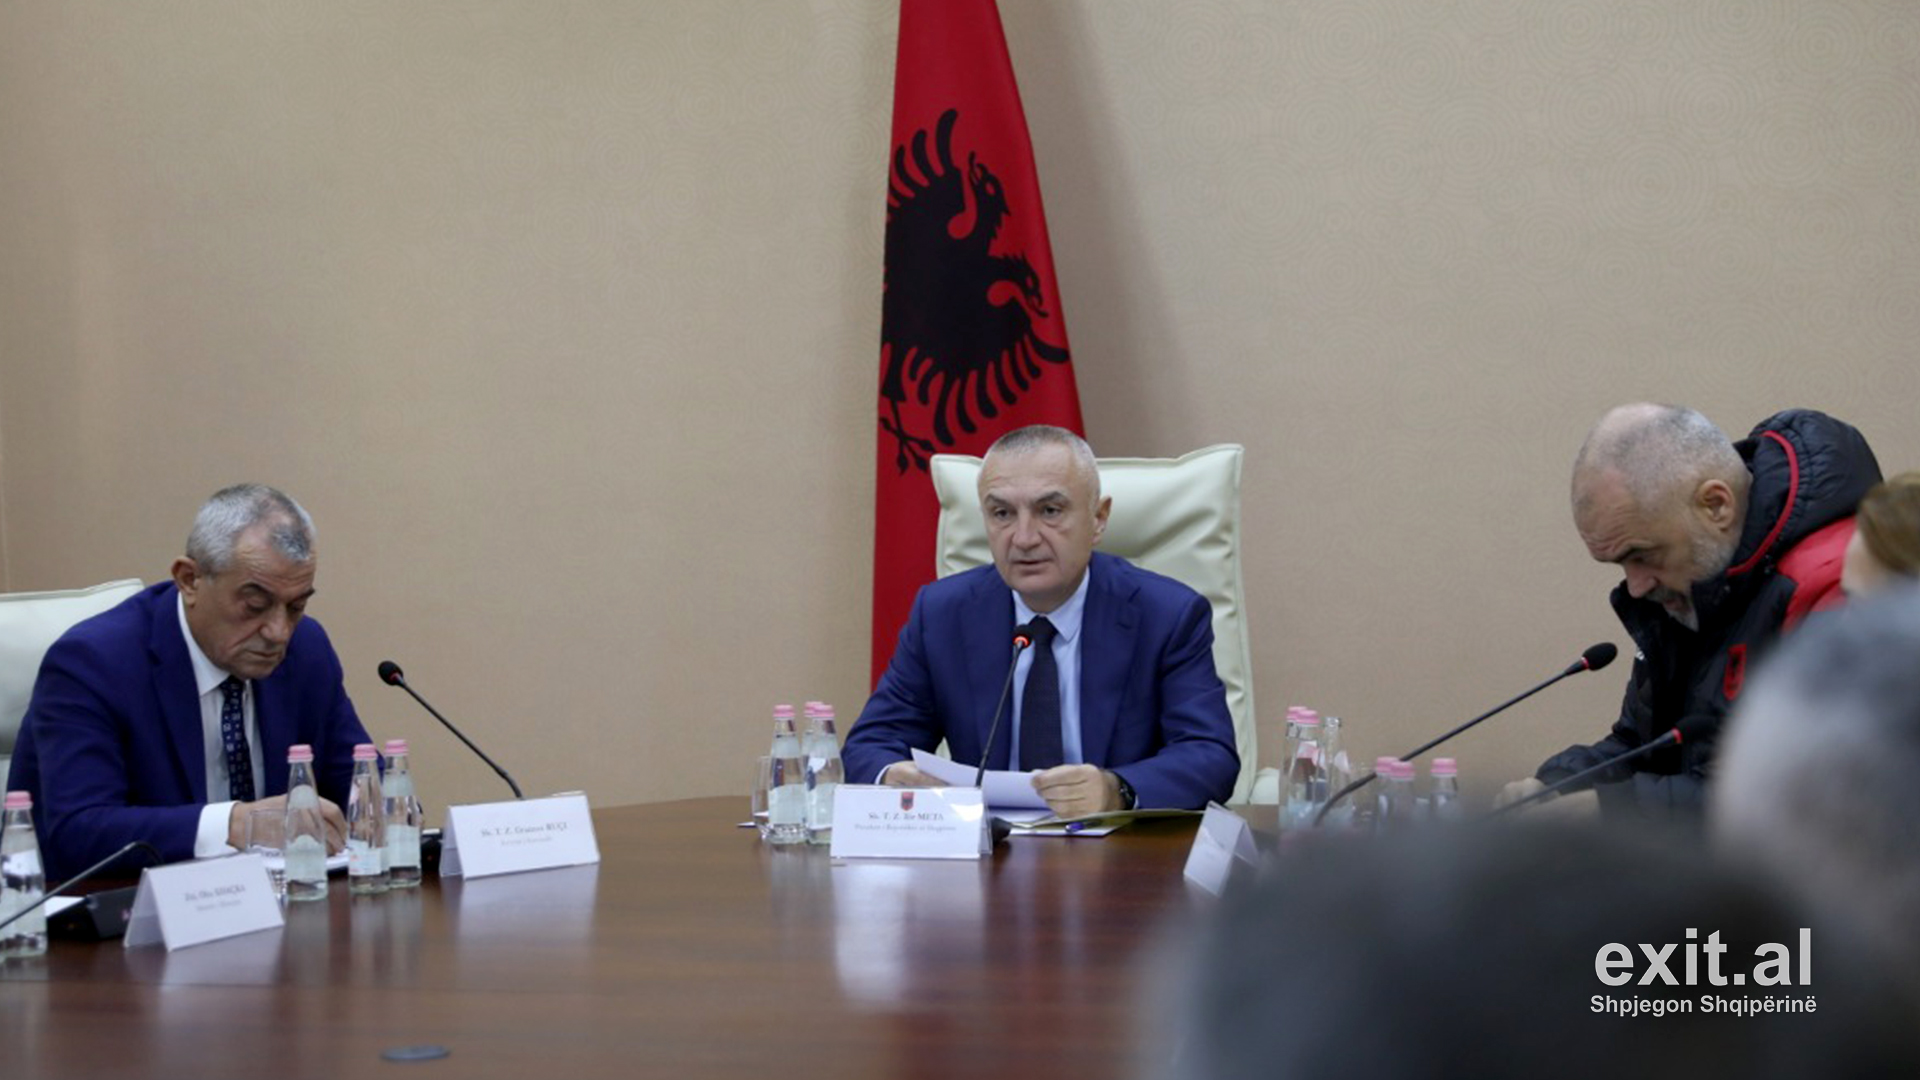 Albanian President Urges Prosecutors to Investigate Collapse of Buildings in Earthquake